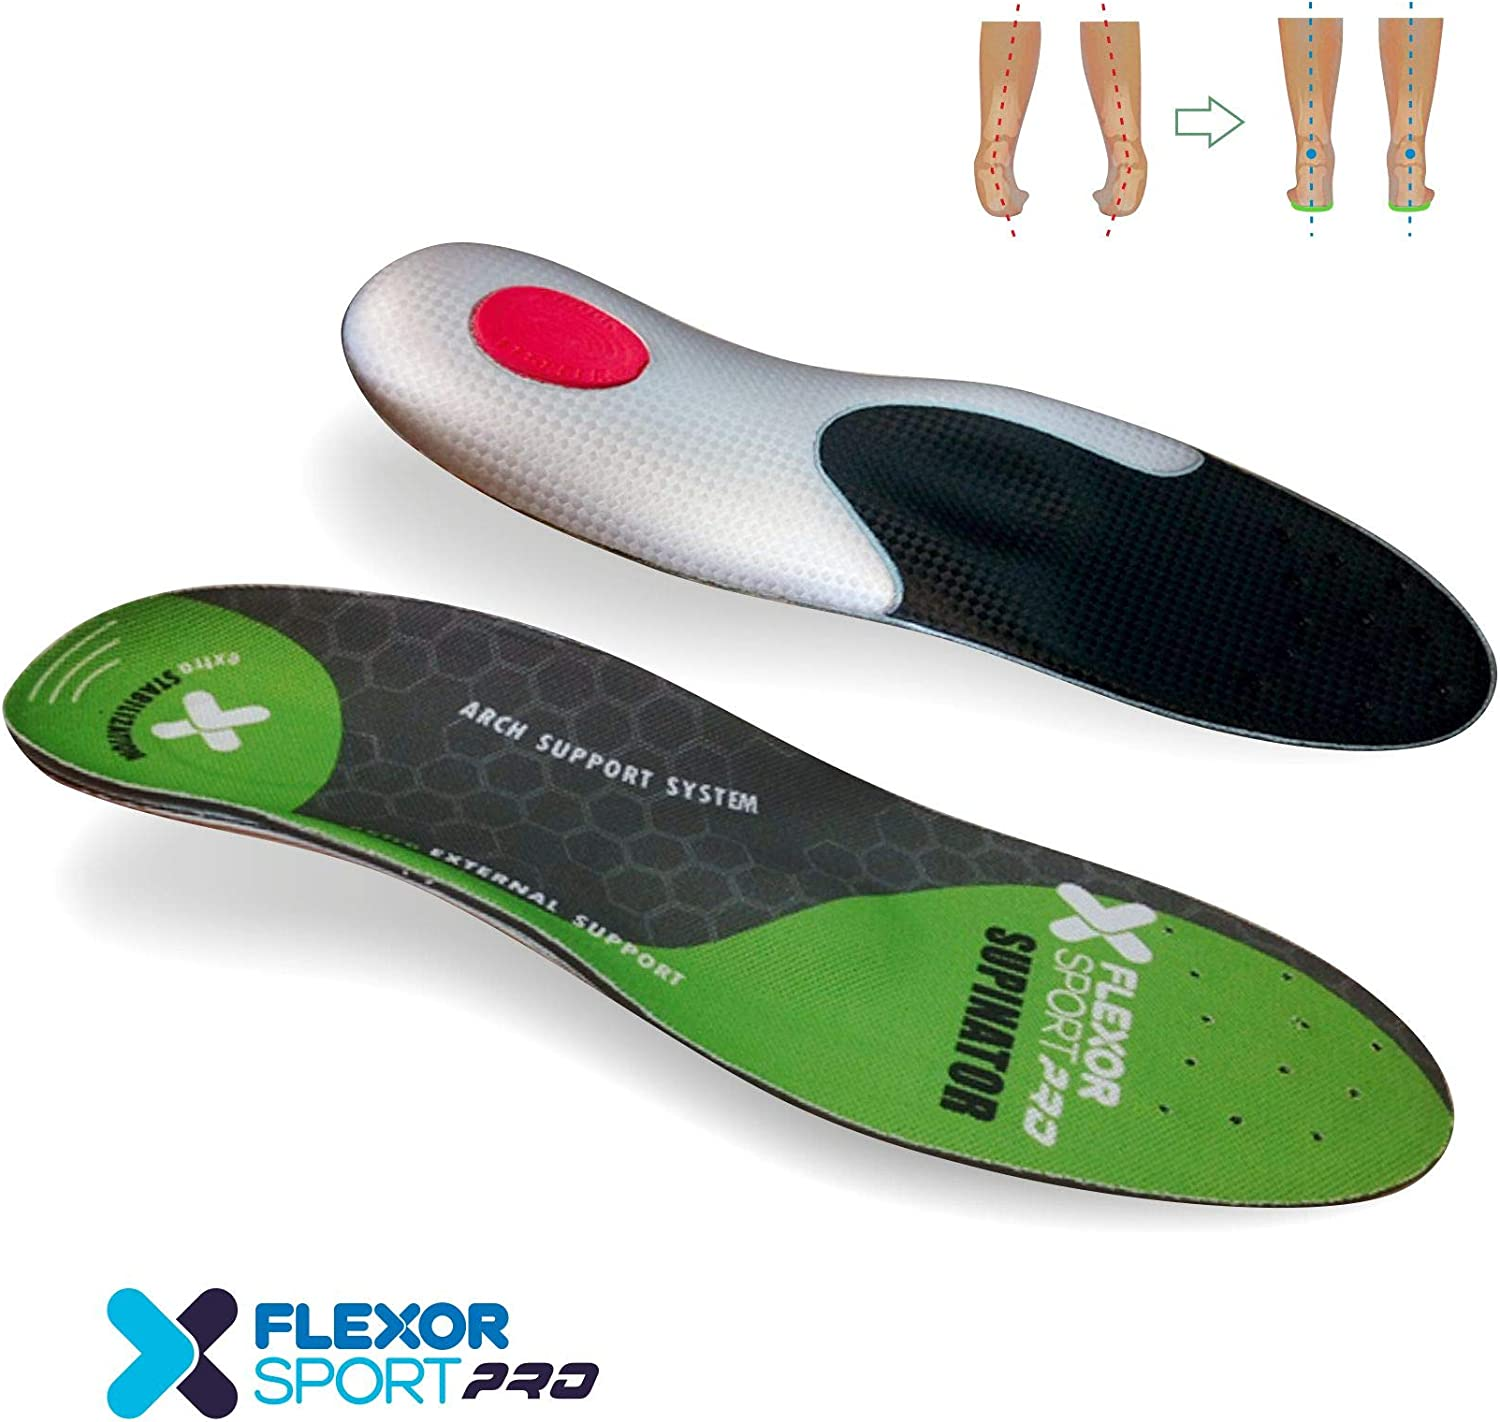 Desconocido Flexor Sport Trail Running para pie supinador FX8 019 ...